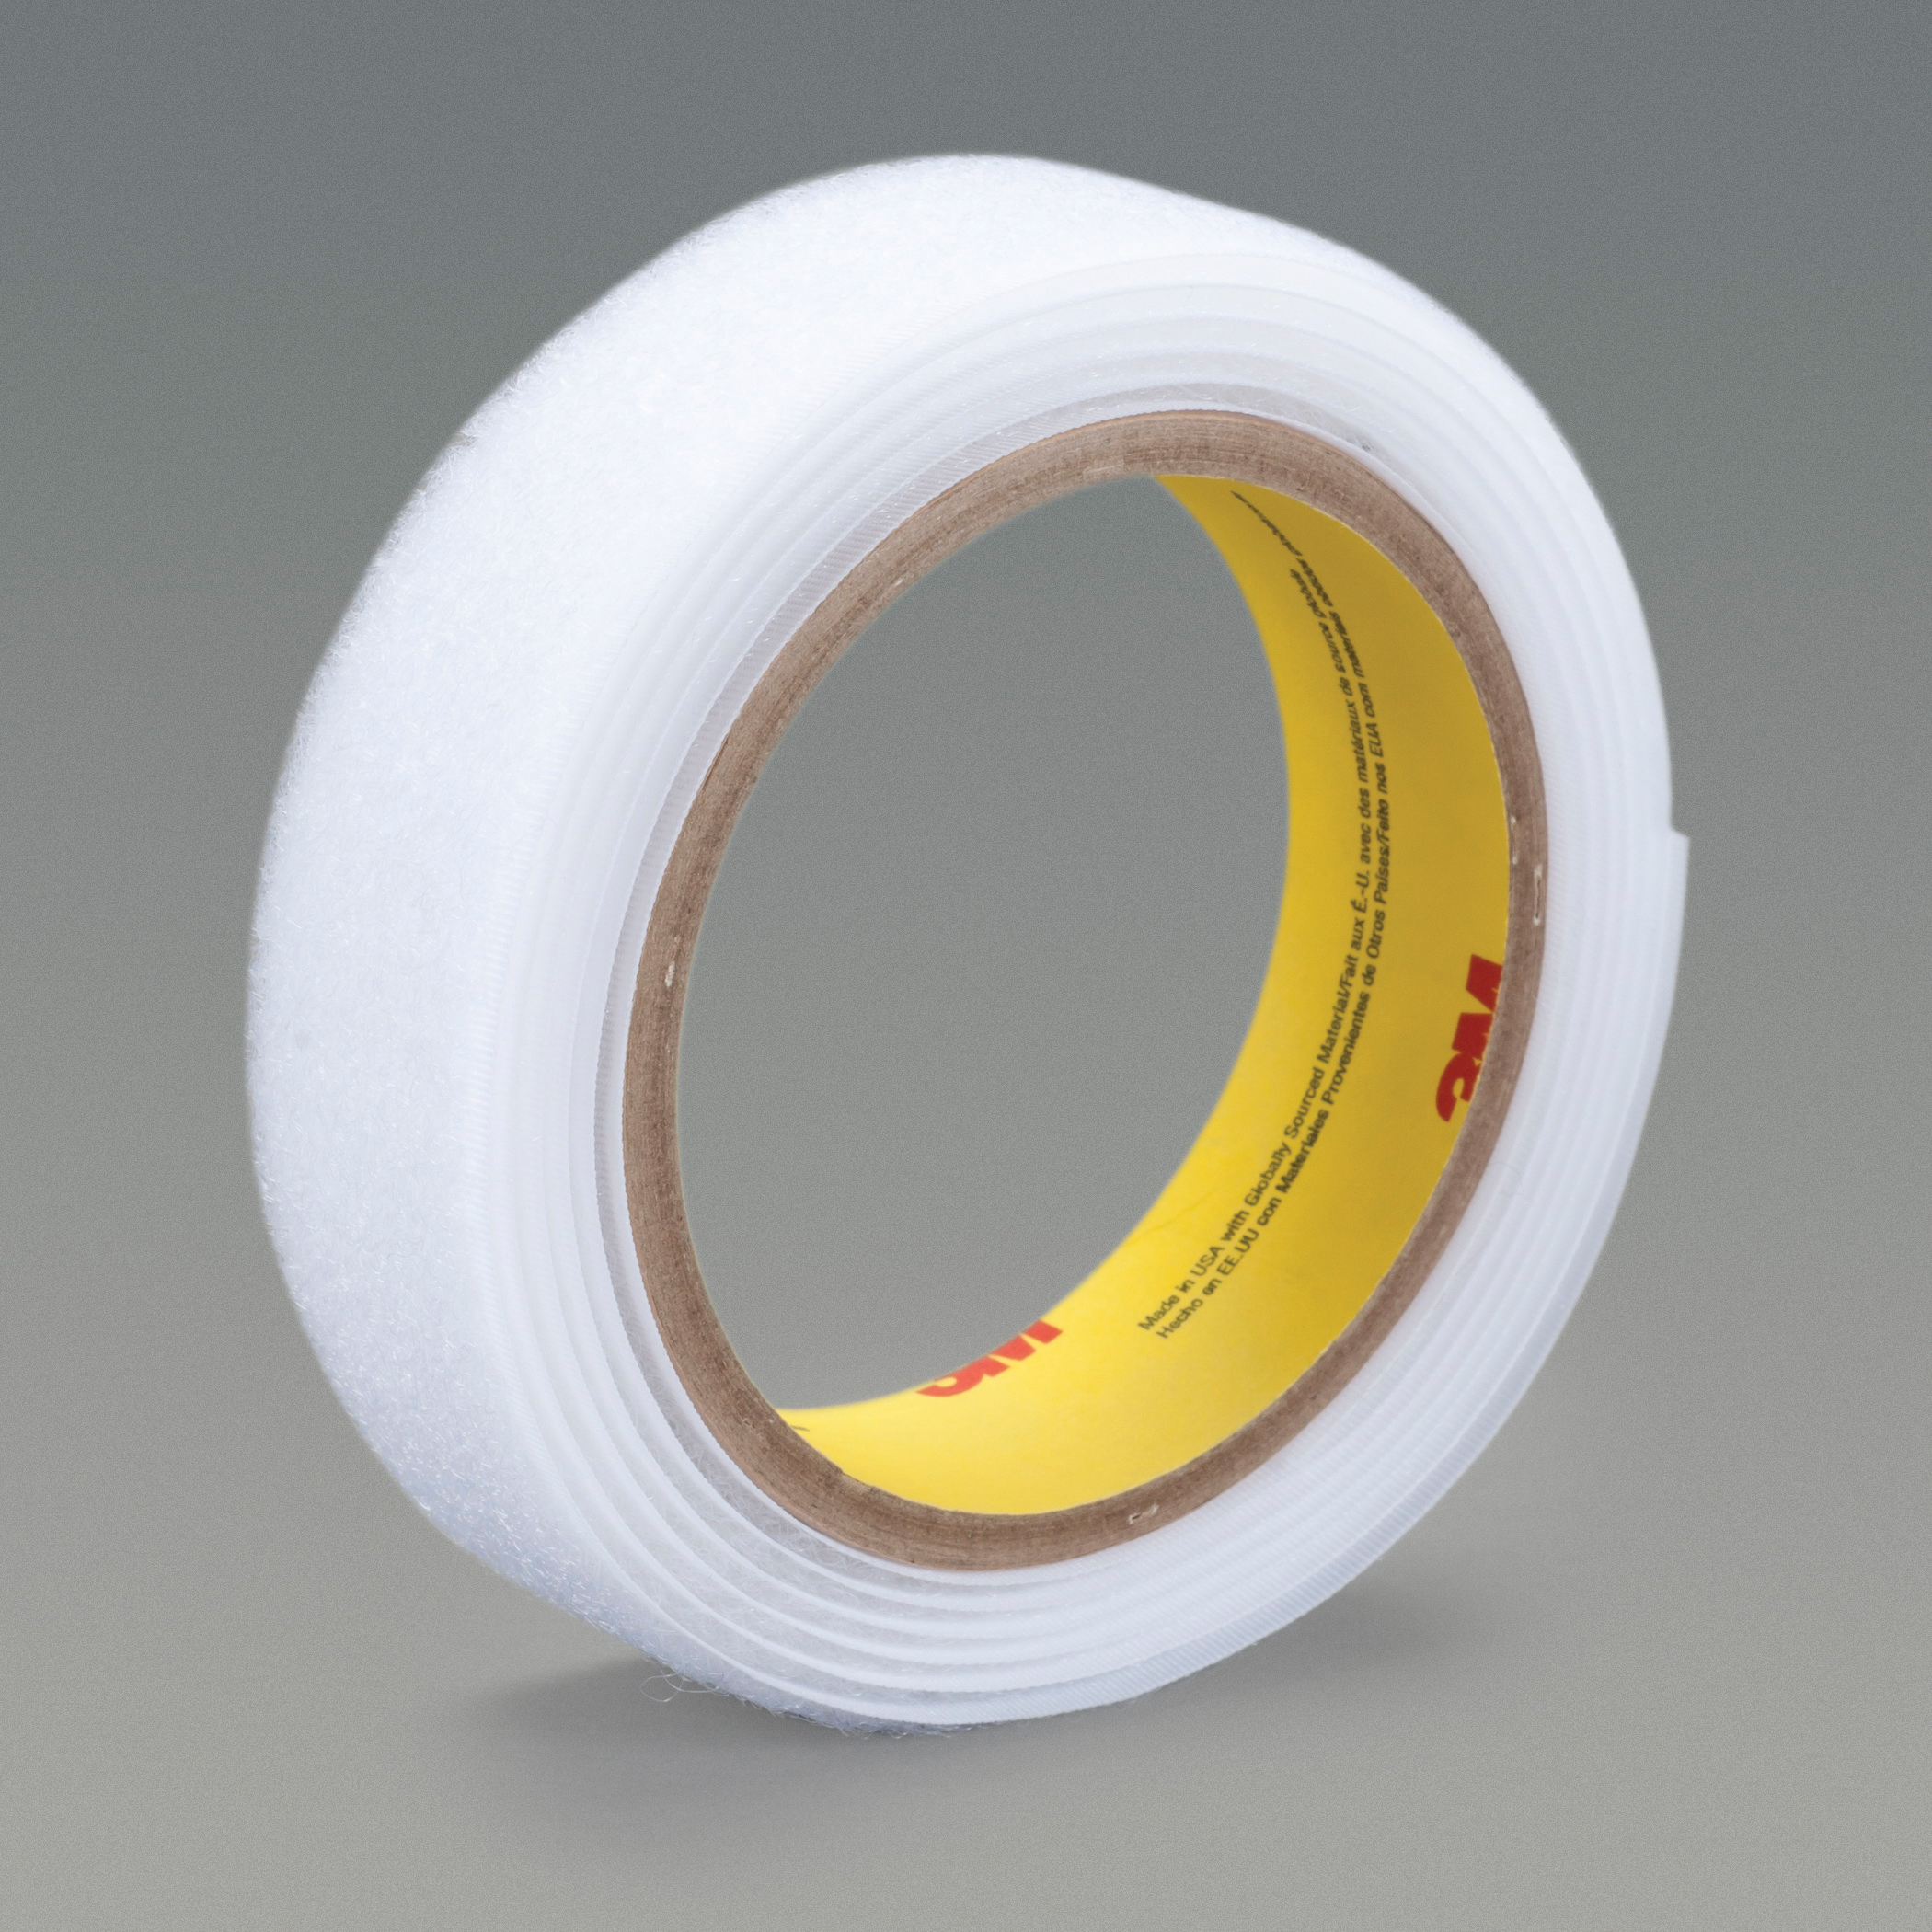 3M™ 021200-86260 Reclosable Hook Fastener Tape, 50 yd L x 1 in W, 0.15 in THK Engaged, Modified Rubber Adhesive, Woven Nylon Backing, White